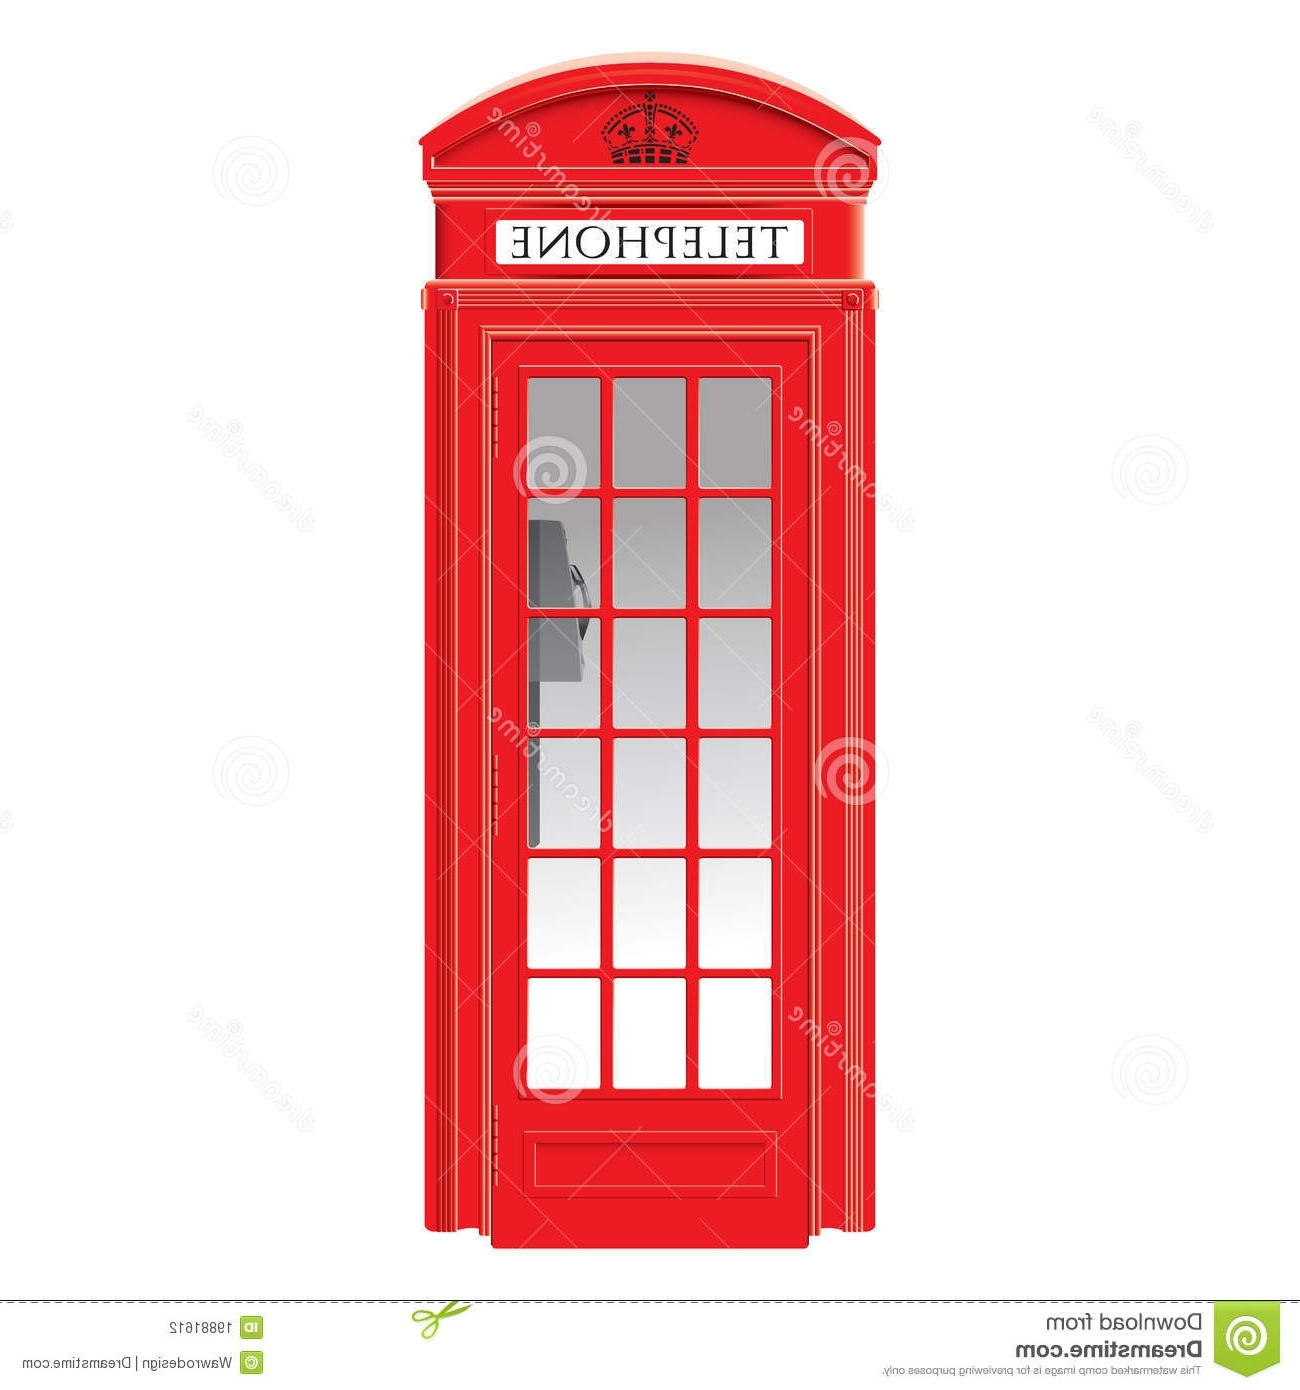 Telephone Box Wardrobes Intended For Recent Red Telephone Box – London – Very Detailed Stock Photo – Image Of (View 11 of 15)